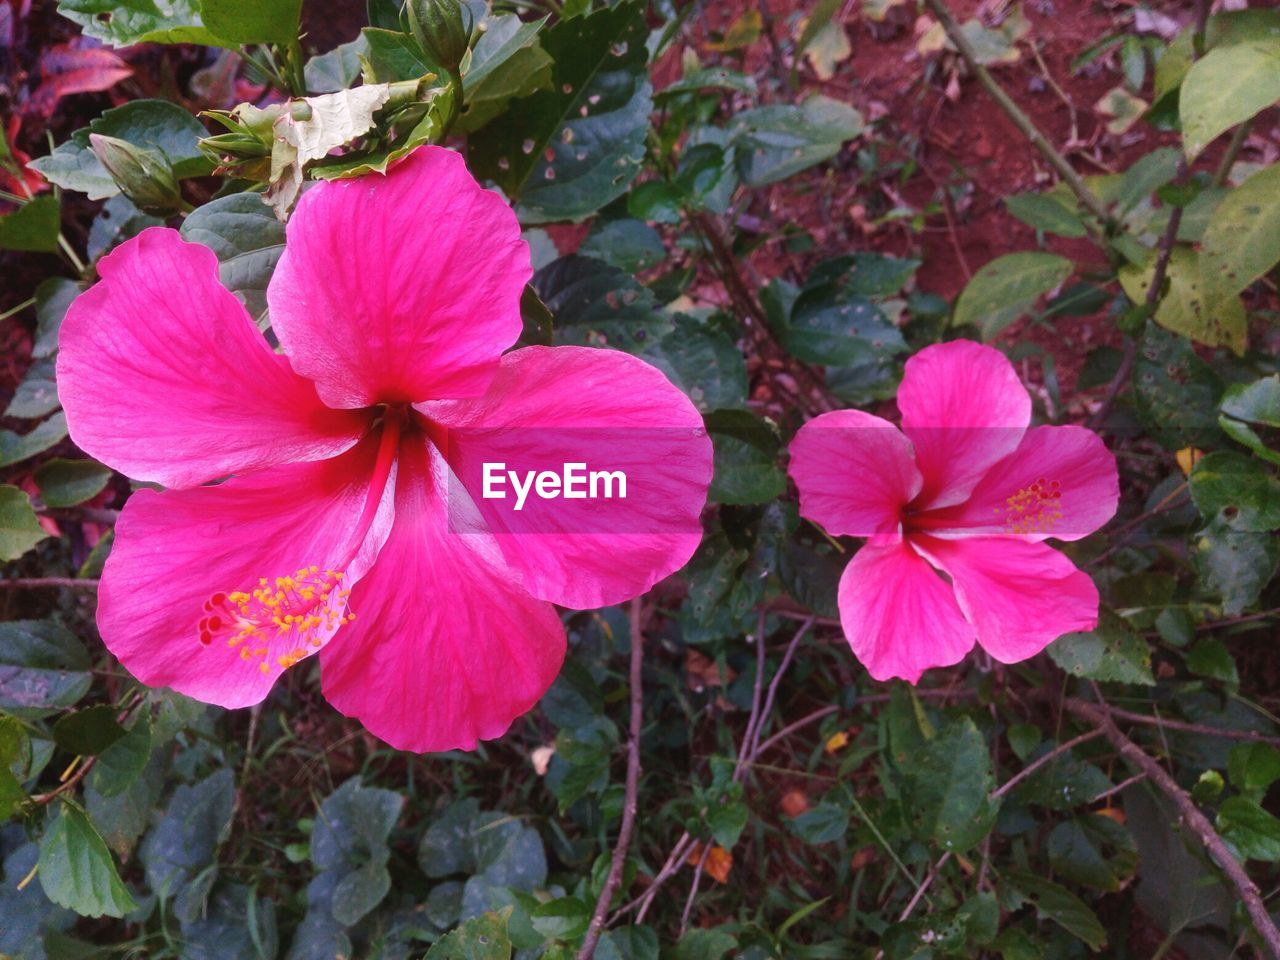 flower, petal, growth, fragility, flower head, nature, blooming, beauty in nature, plant, pink color, freshness, day, outdoors, no people, close-up, periwinkle, petunia, hibiscus